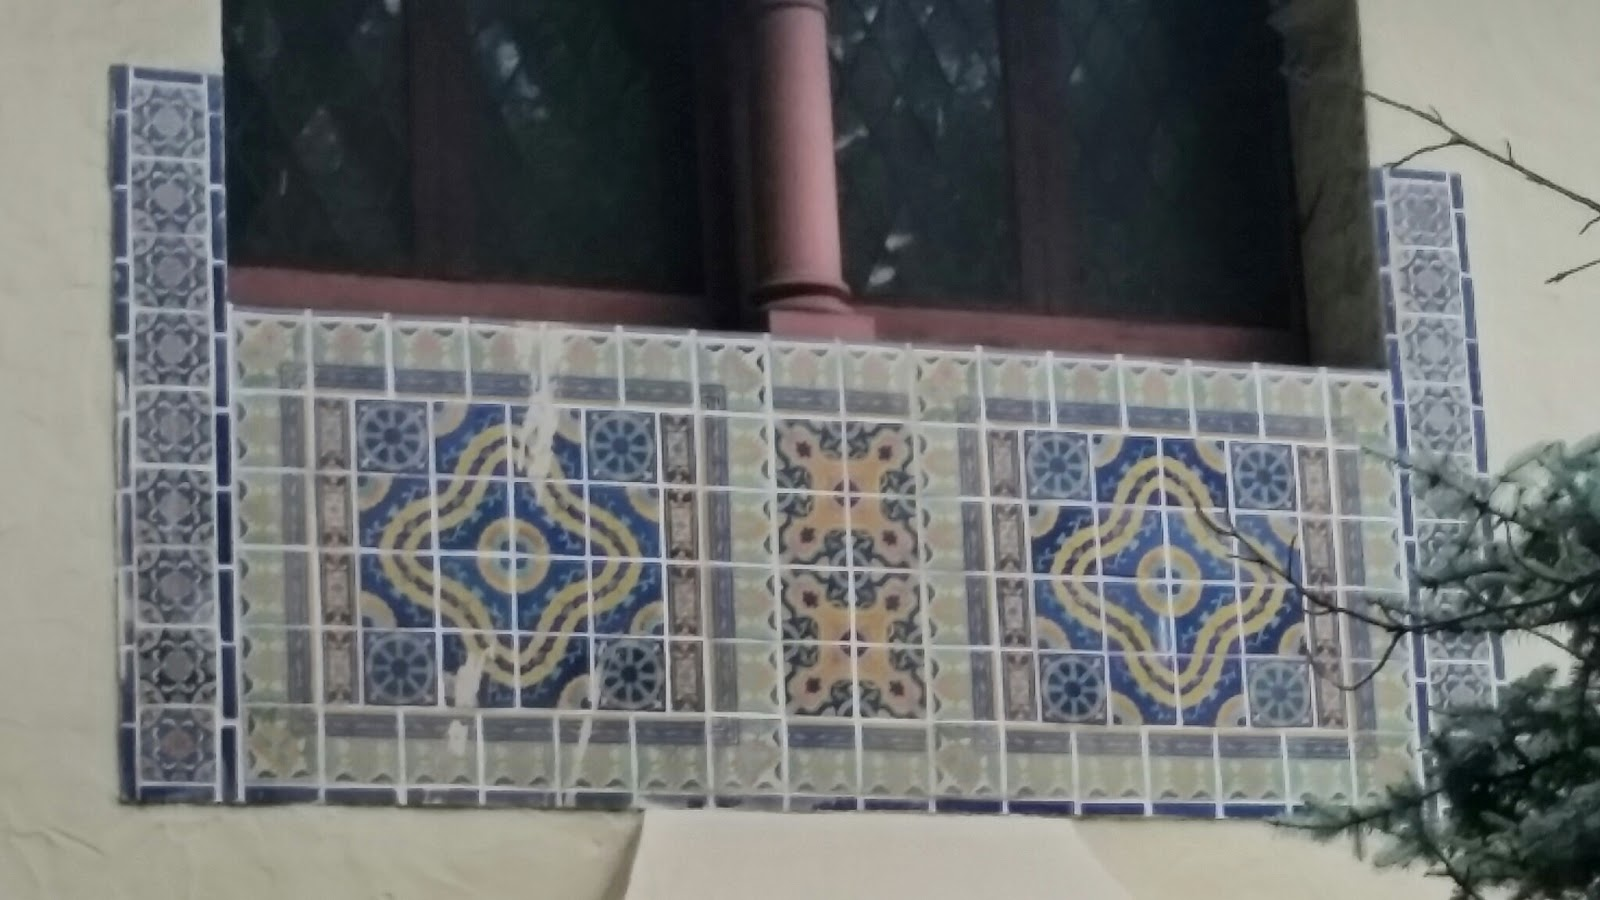 A Moorish-influenced California tile detail from the early 1920's